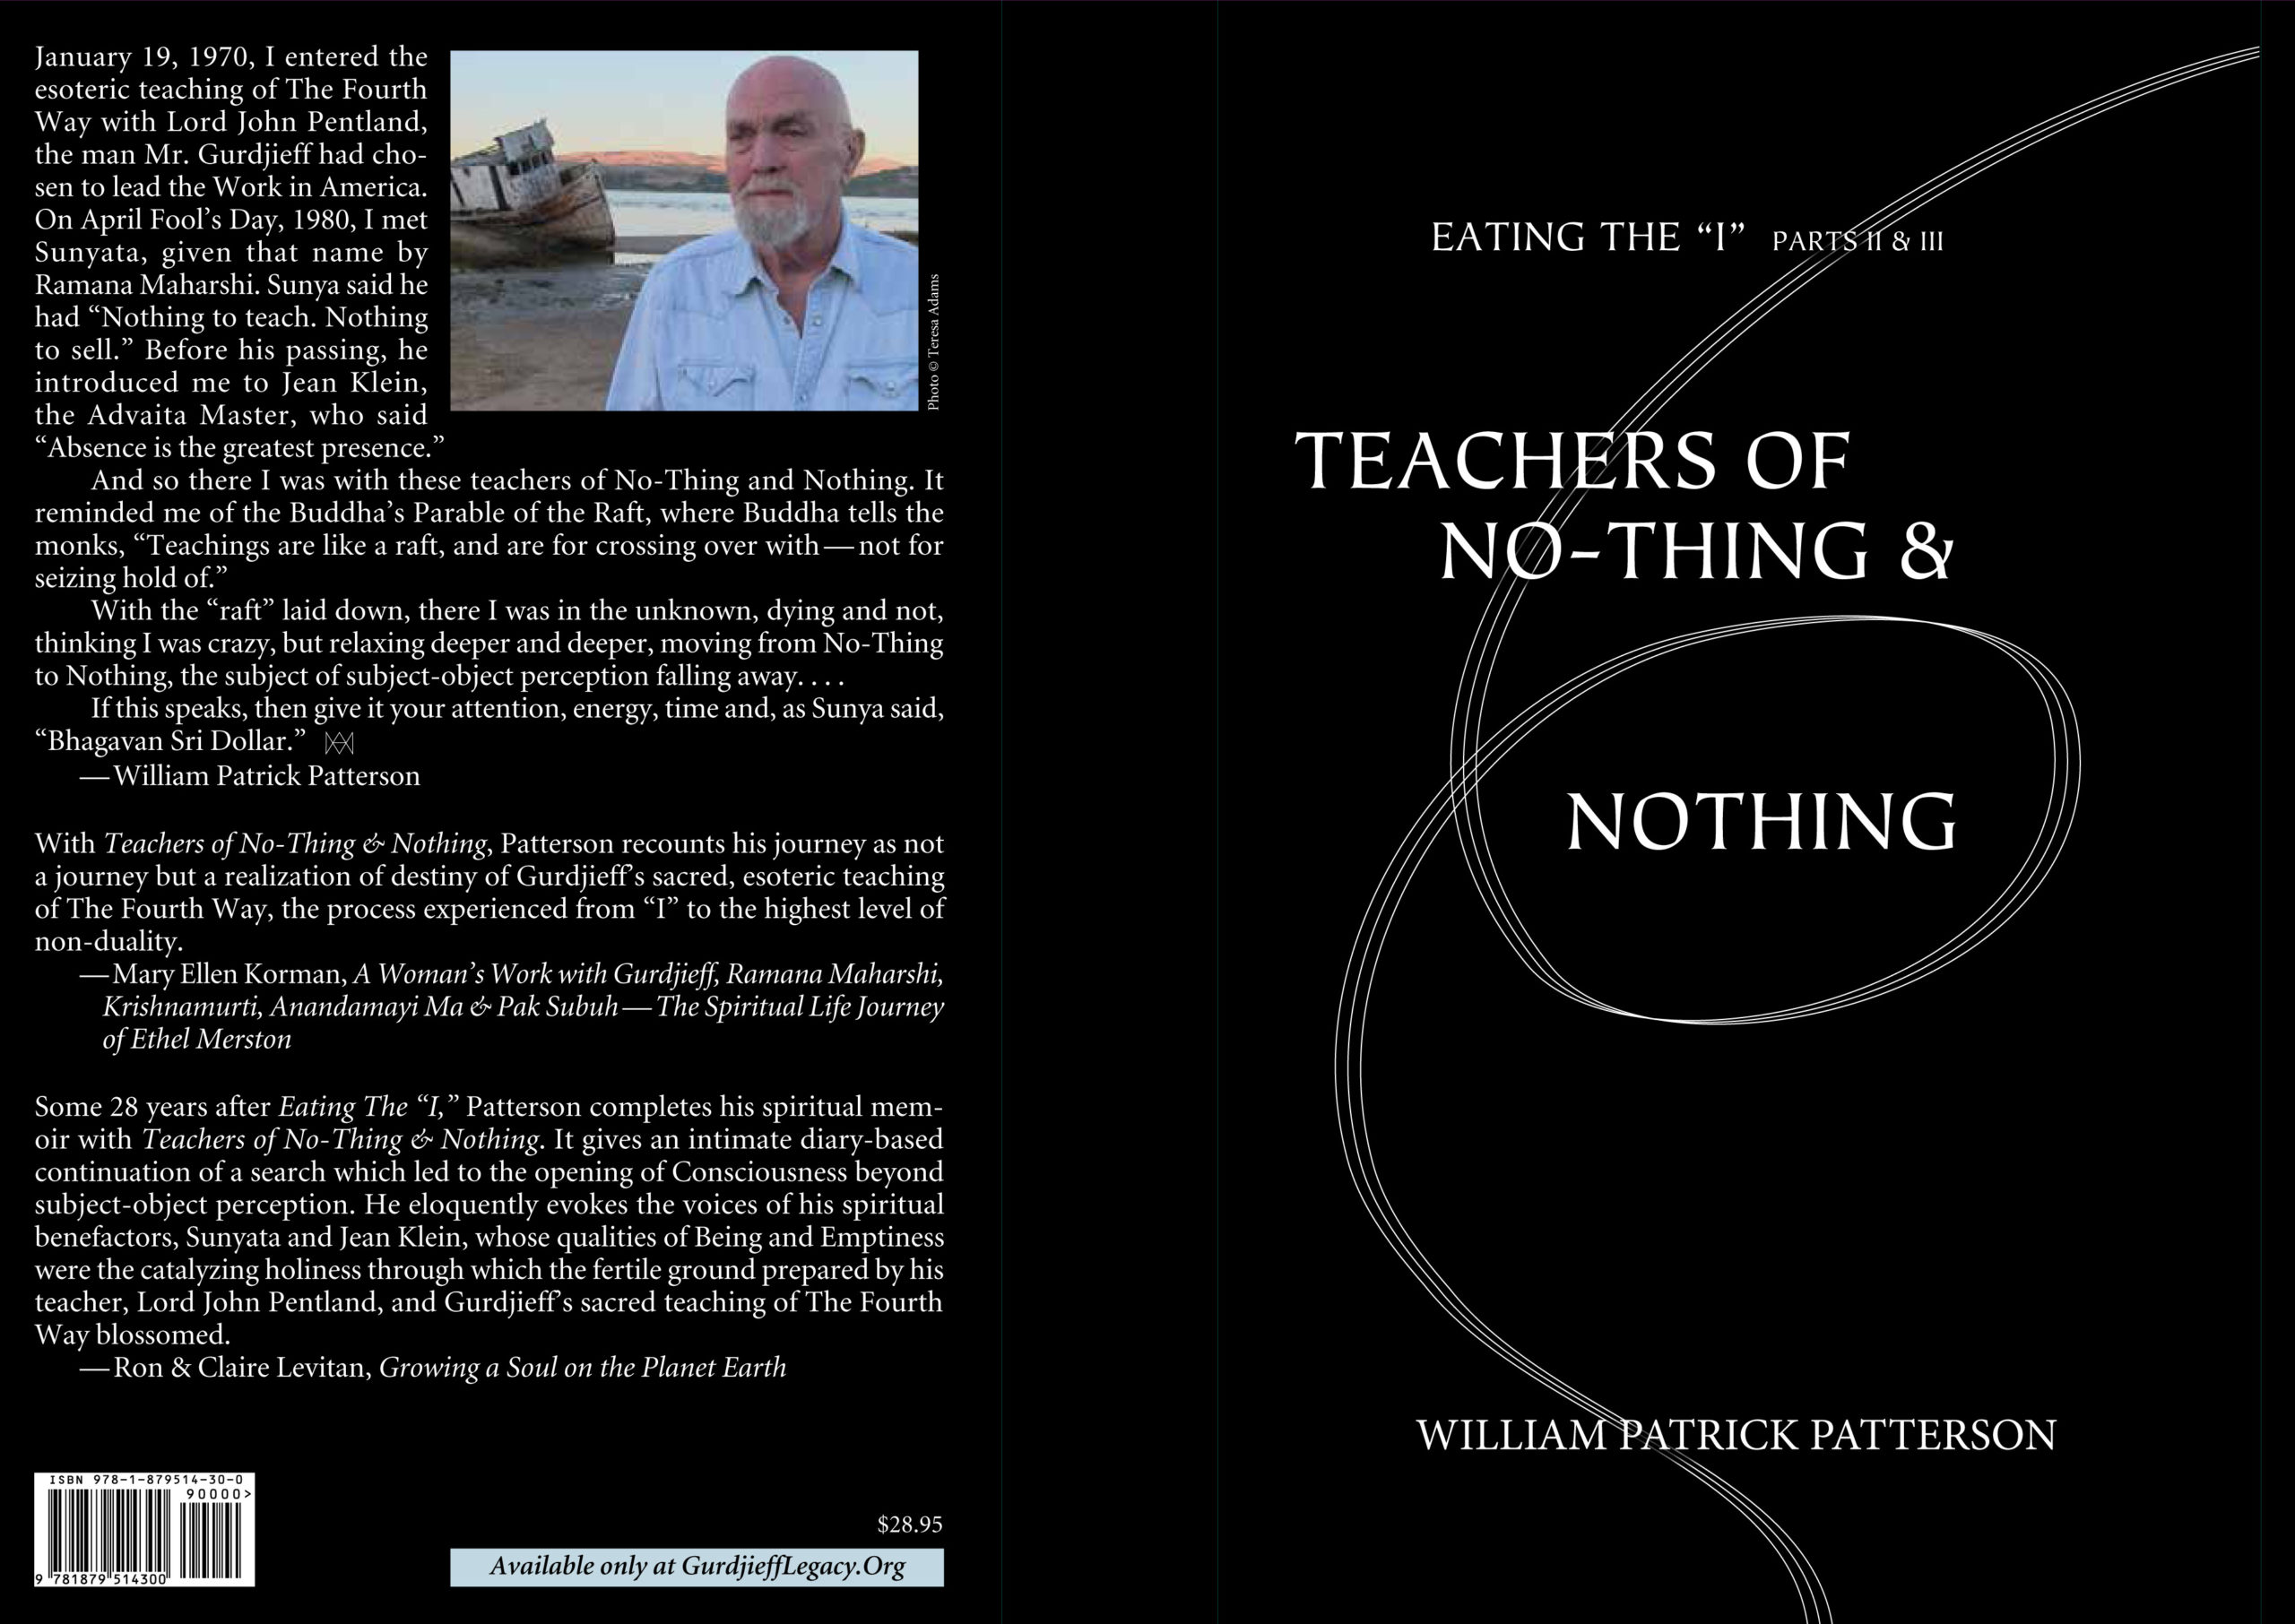 Teachers of No-Thing and Nothing